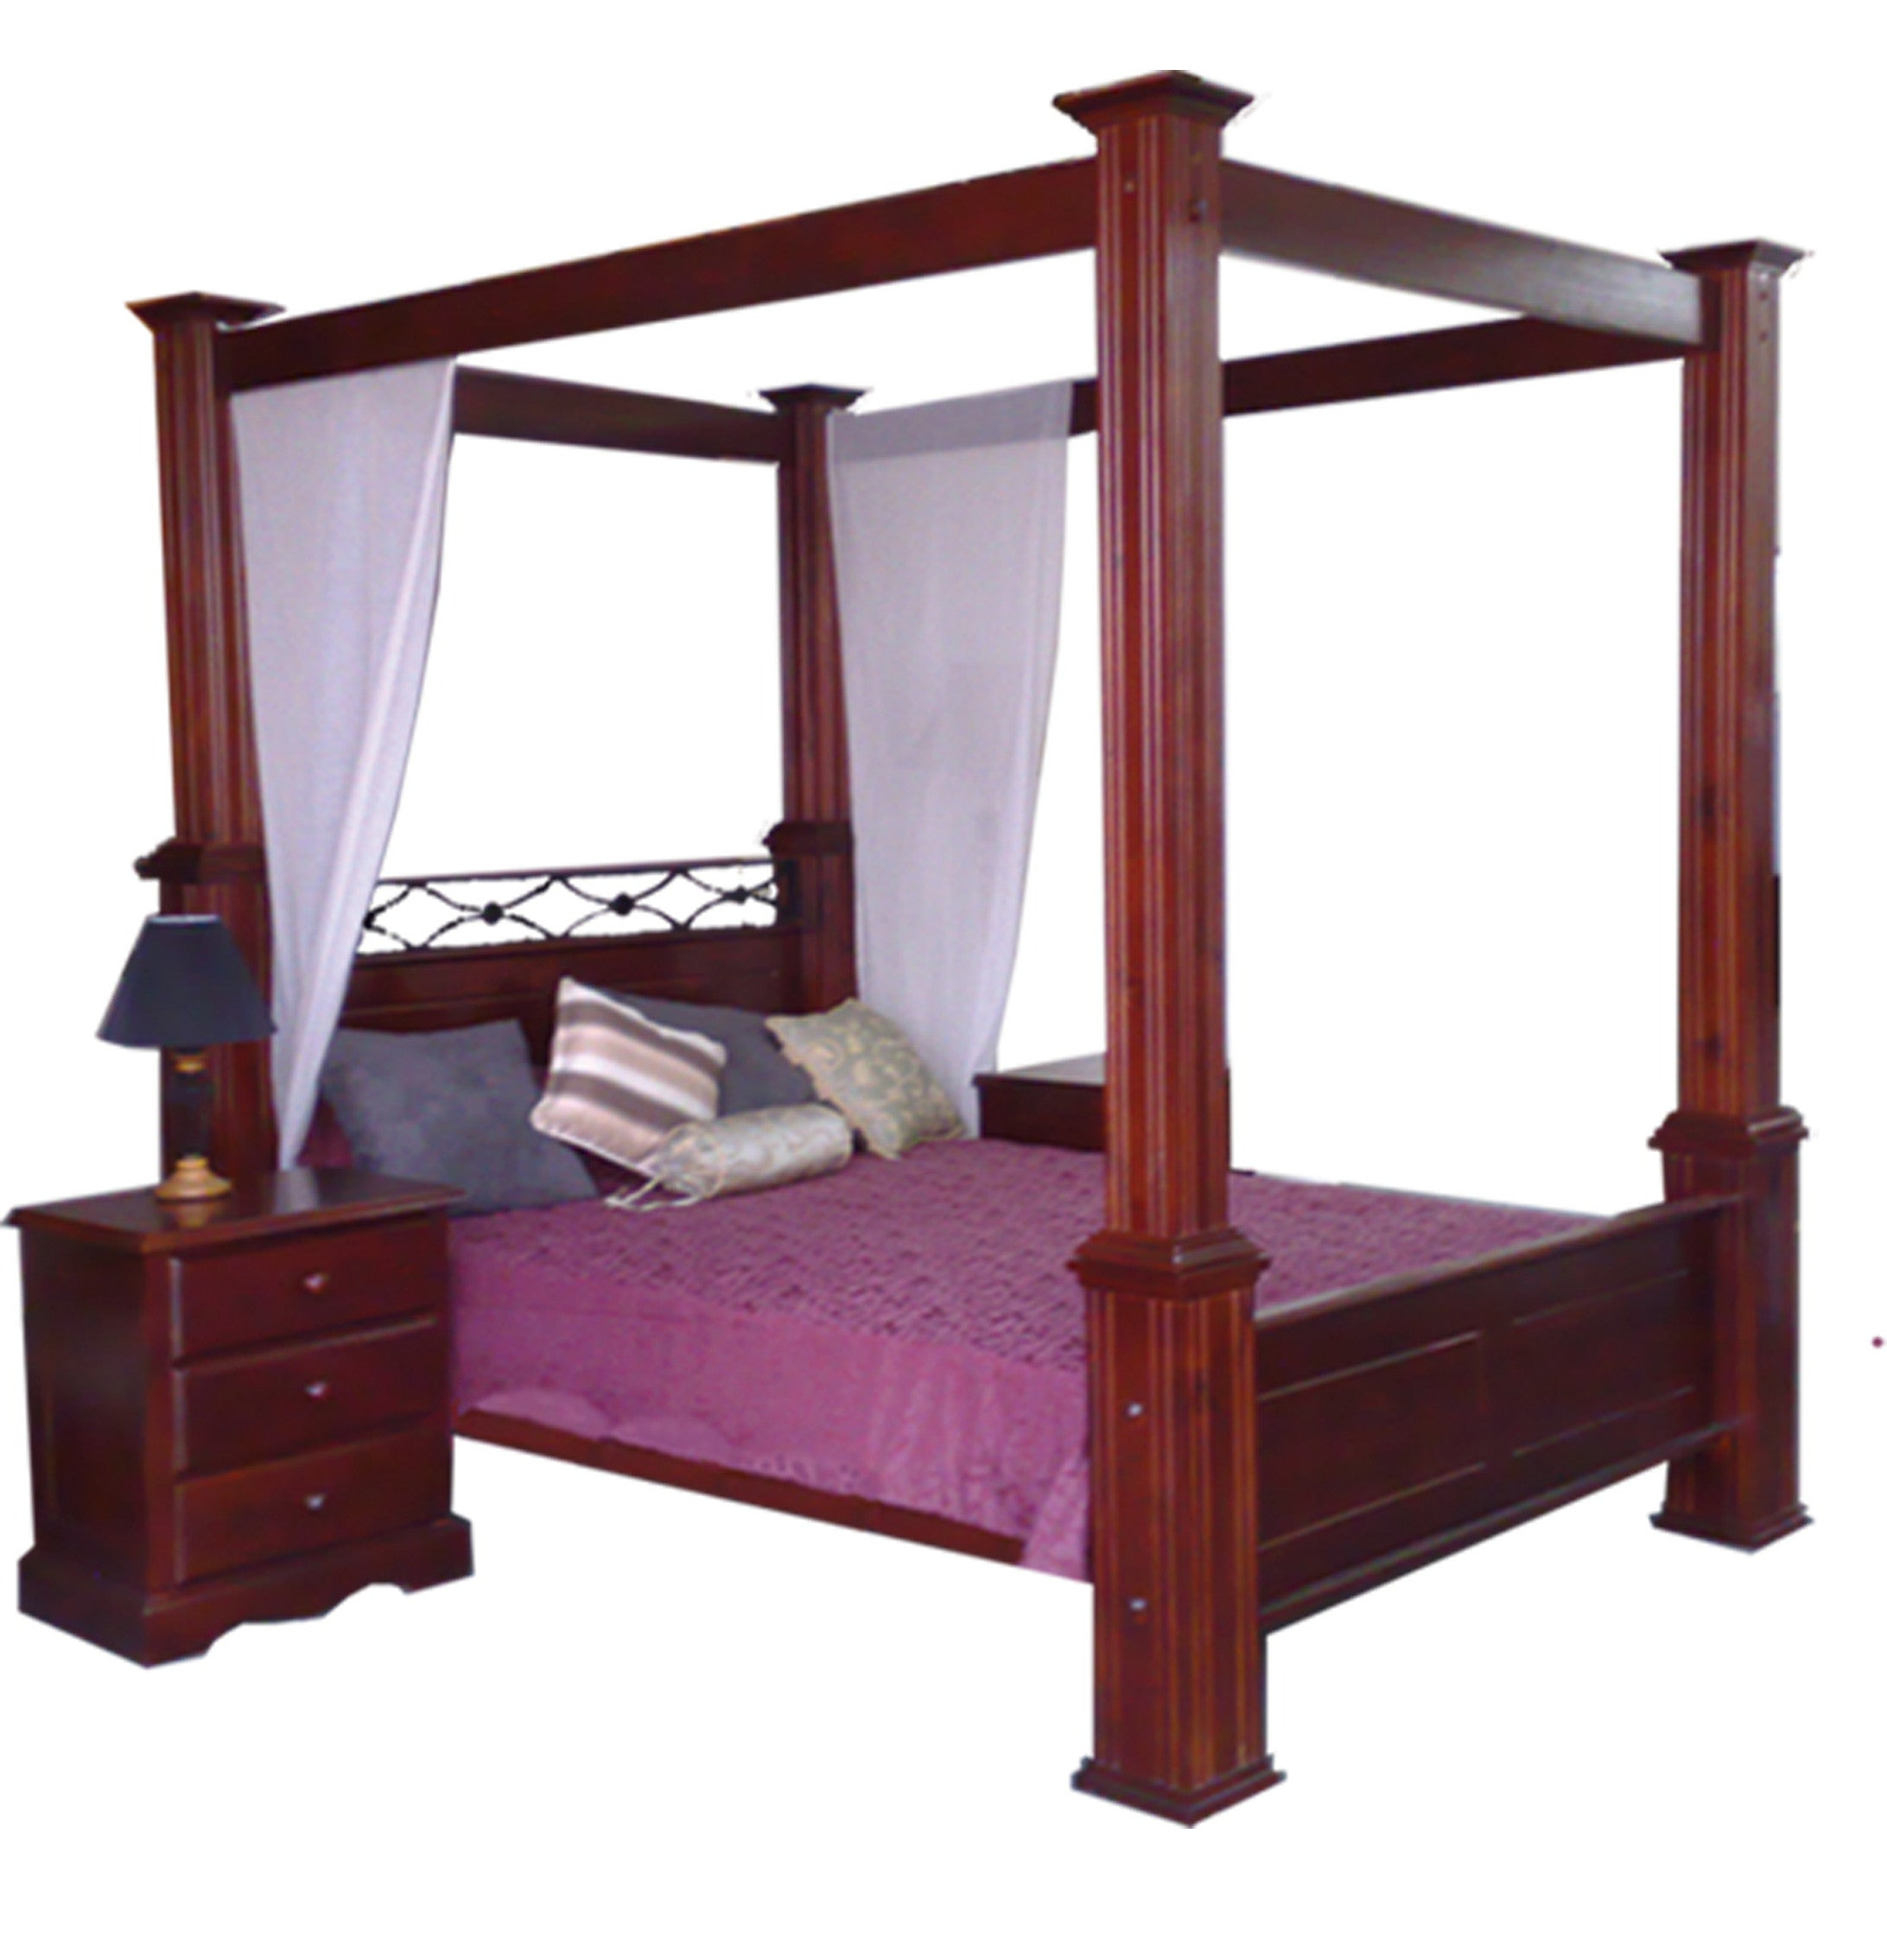 index furniture four heirloom quality bed poster beds jacobean flute